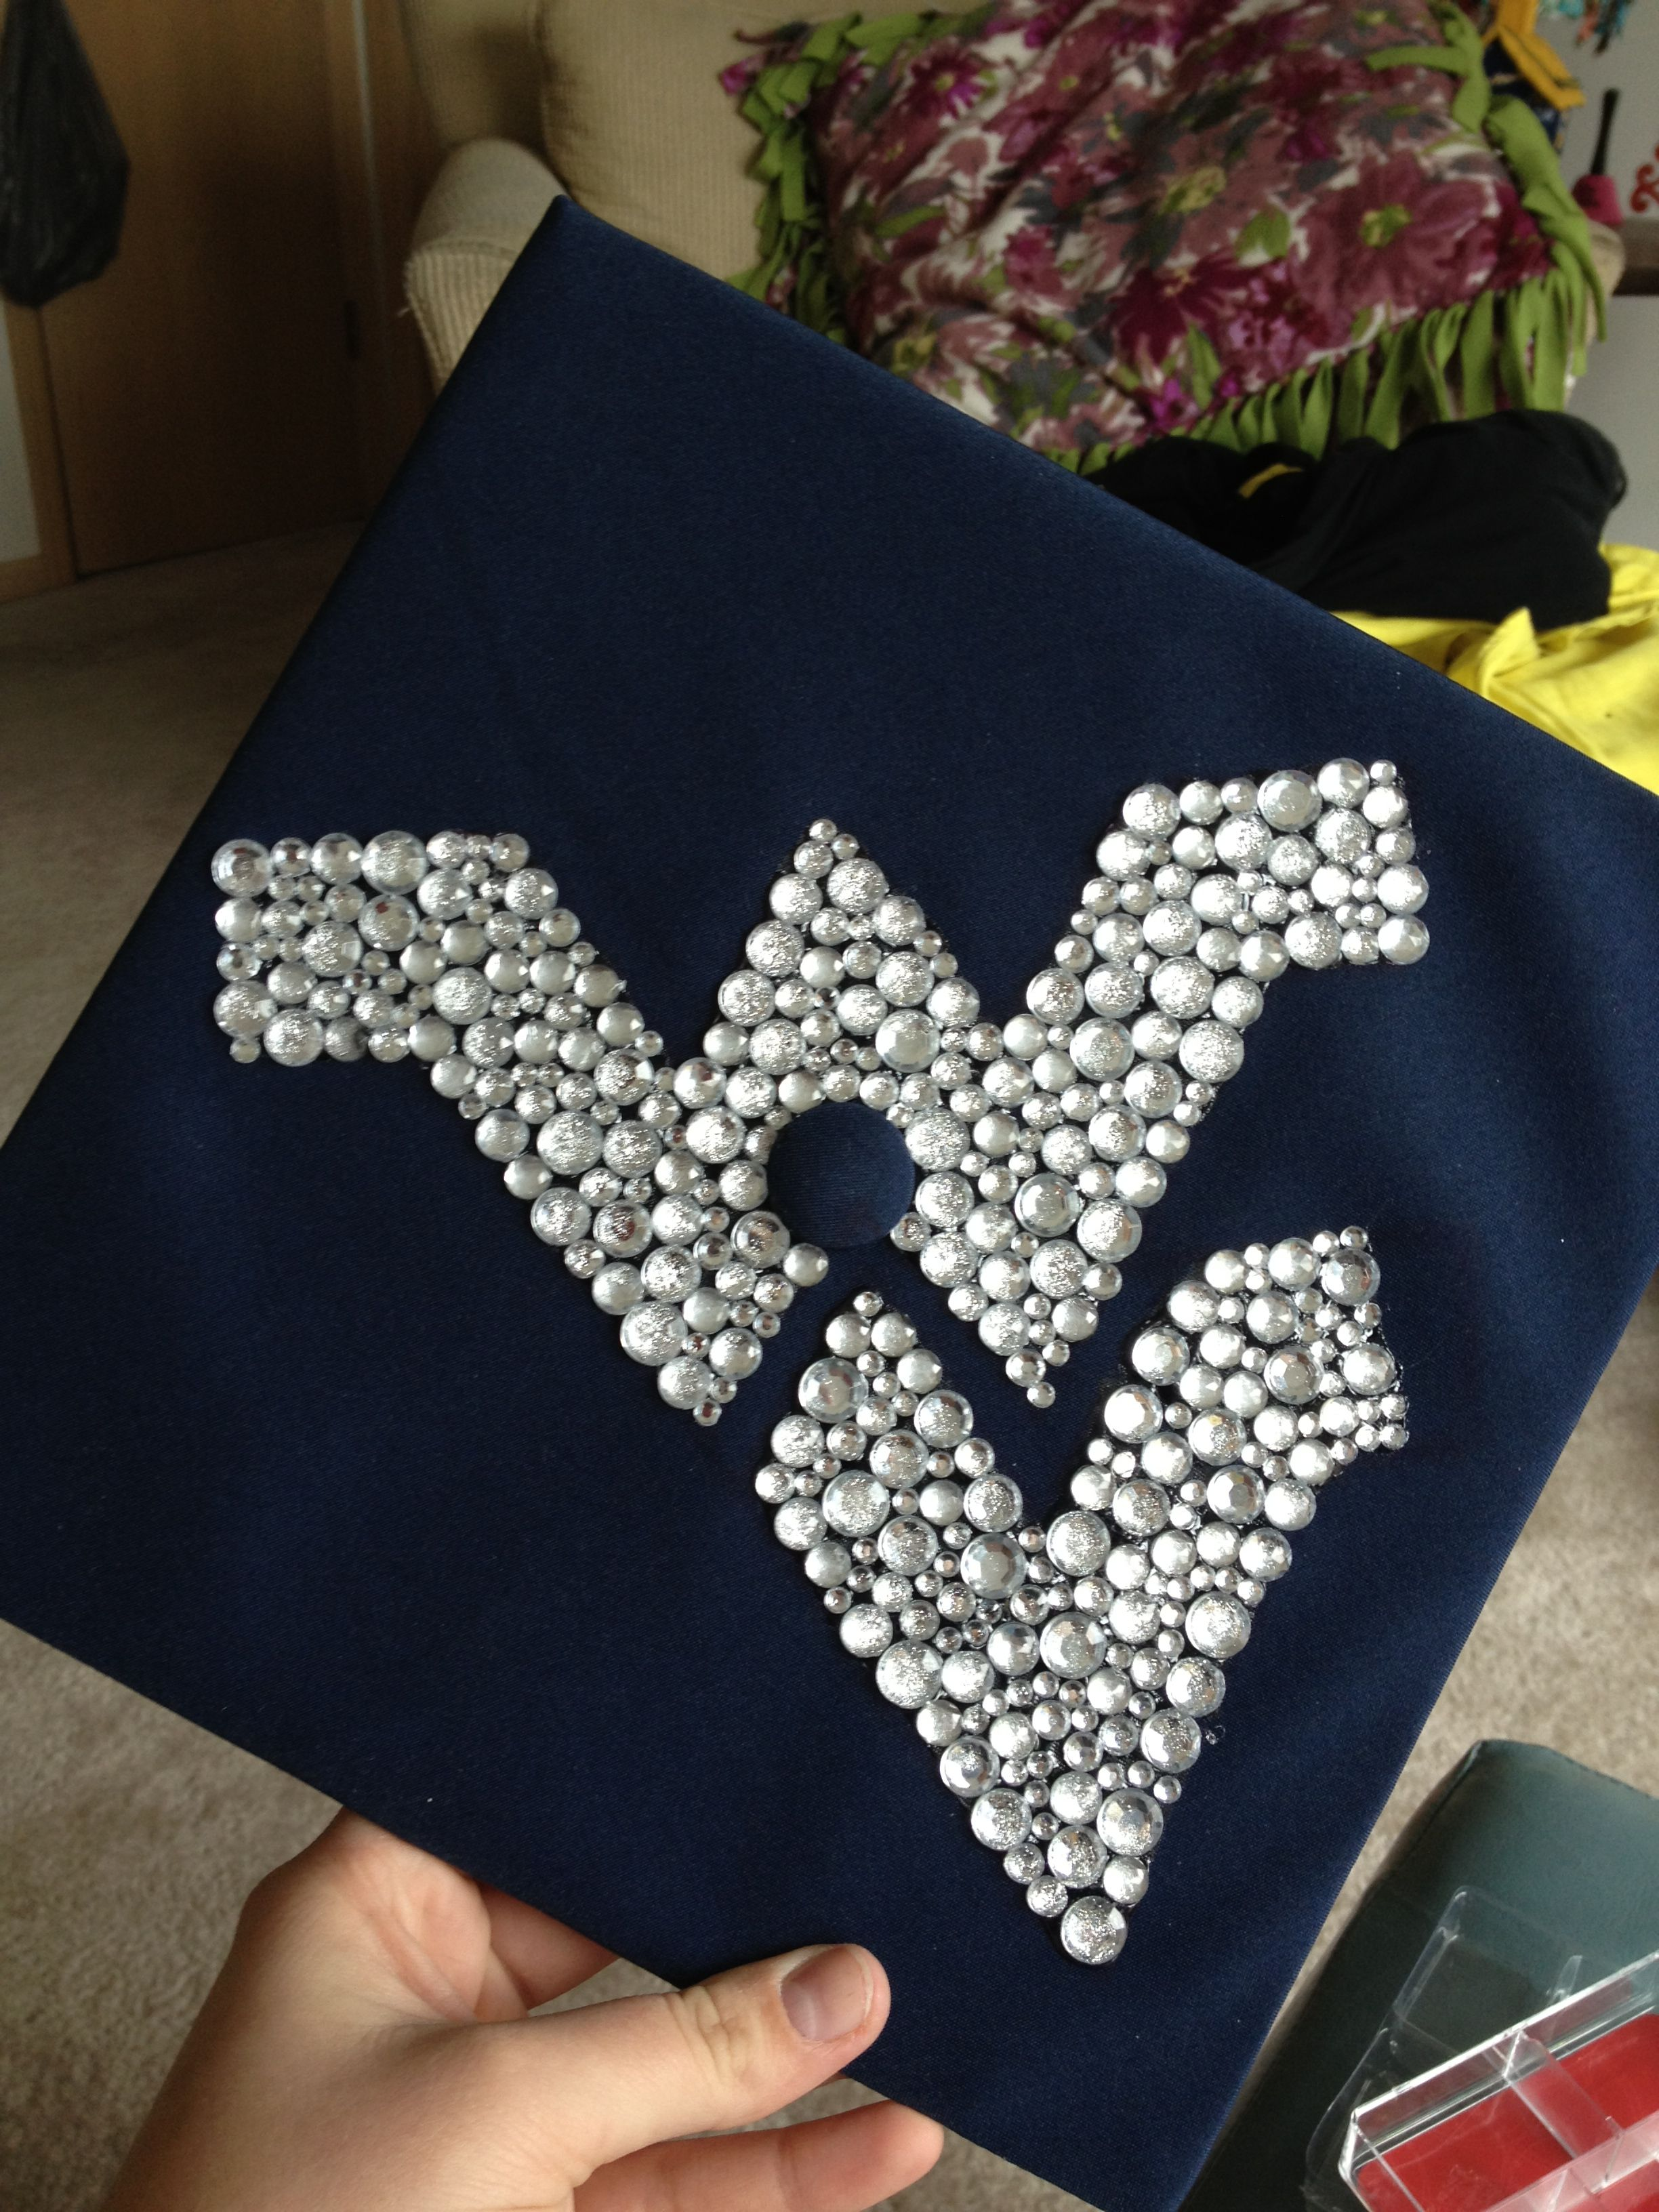 West Virginia University inspired graduation cap